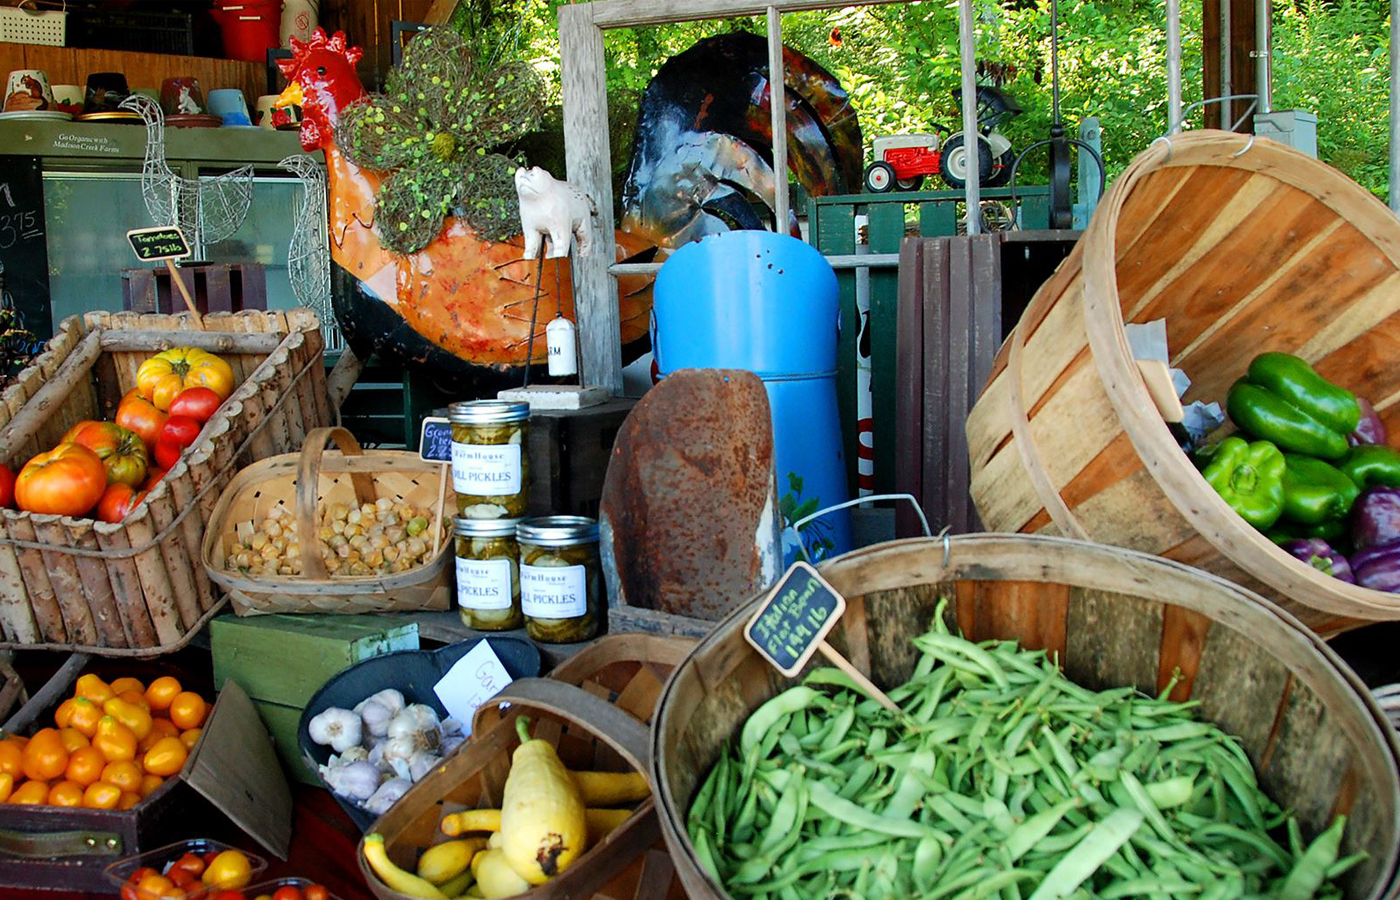 Goodlettsville Farmers' Market Opens May 2